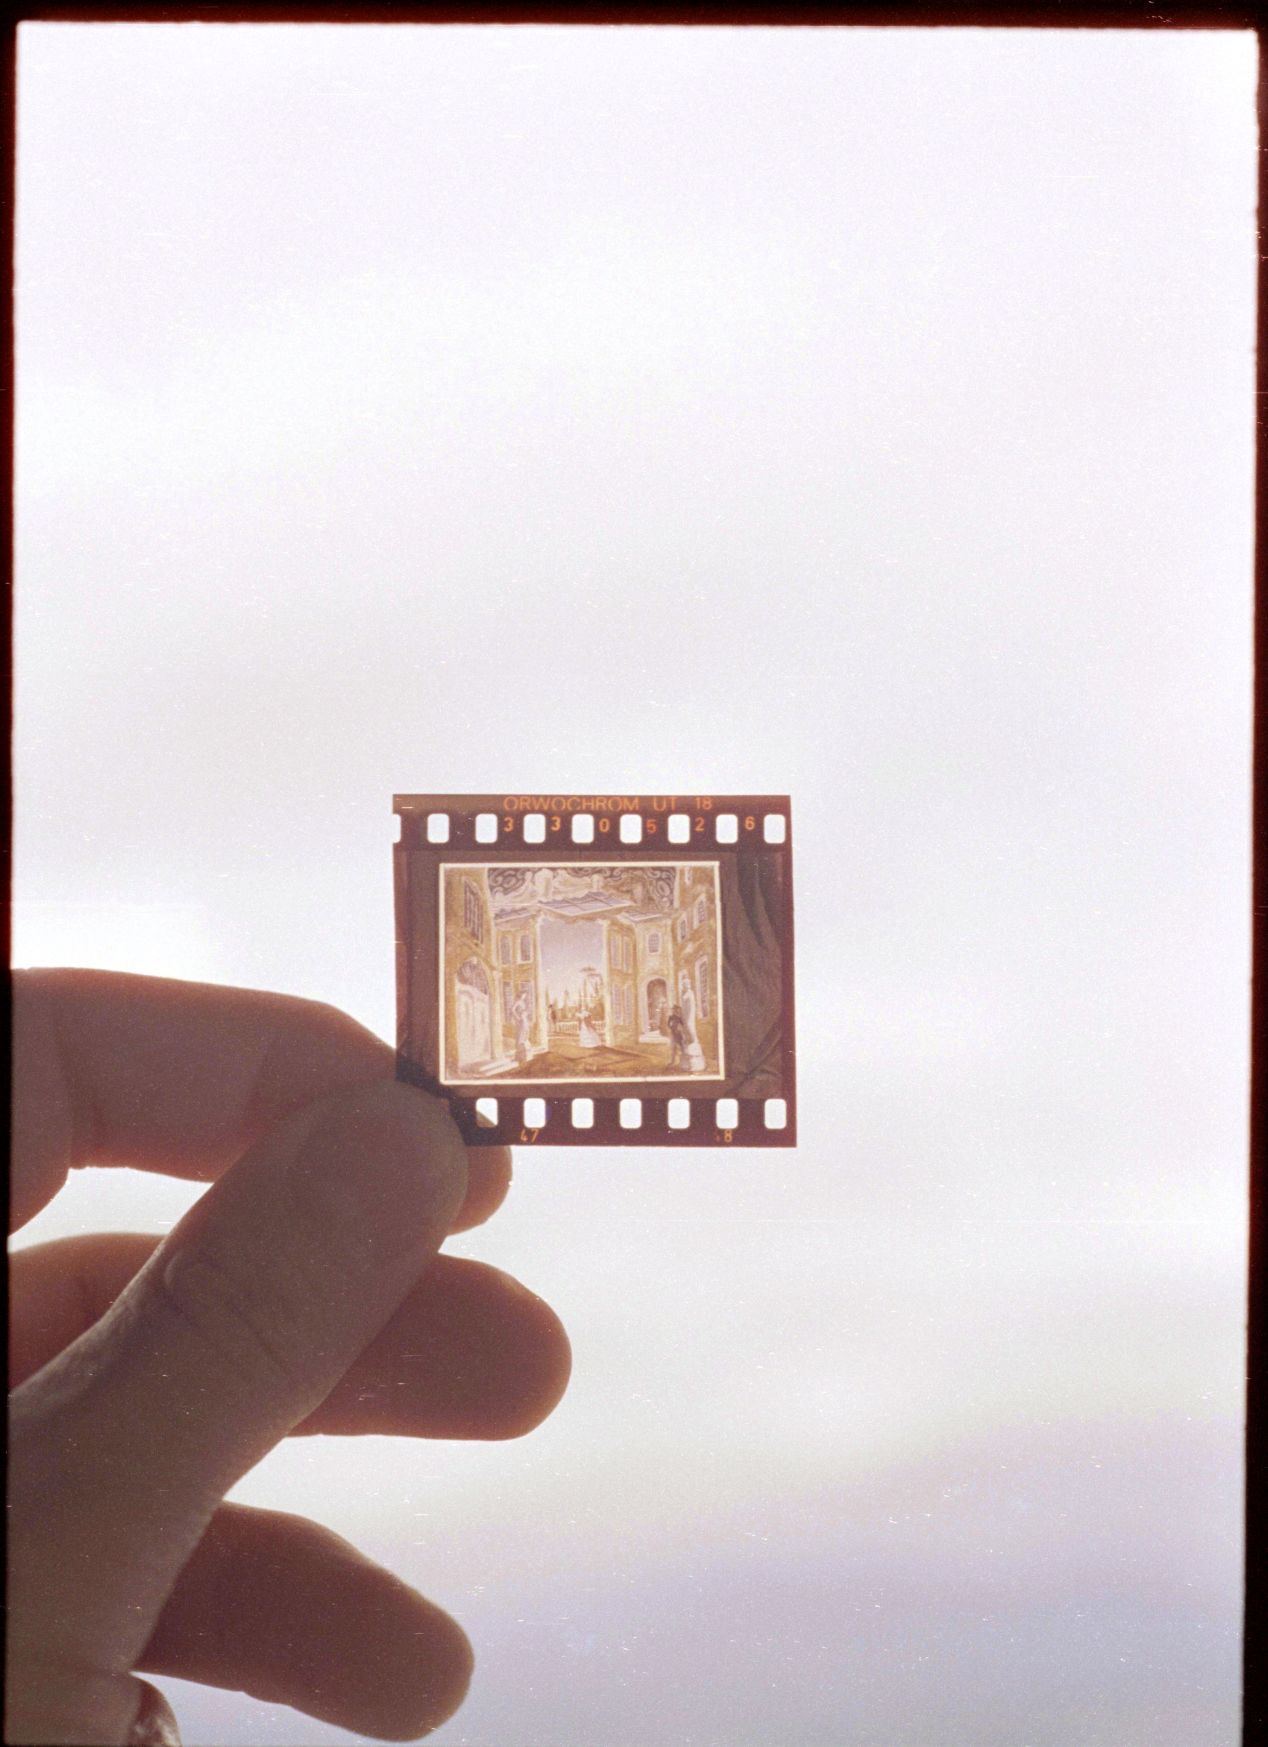 A piece of ORWOCHROM UT 18 film from old family archives.